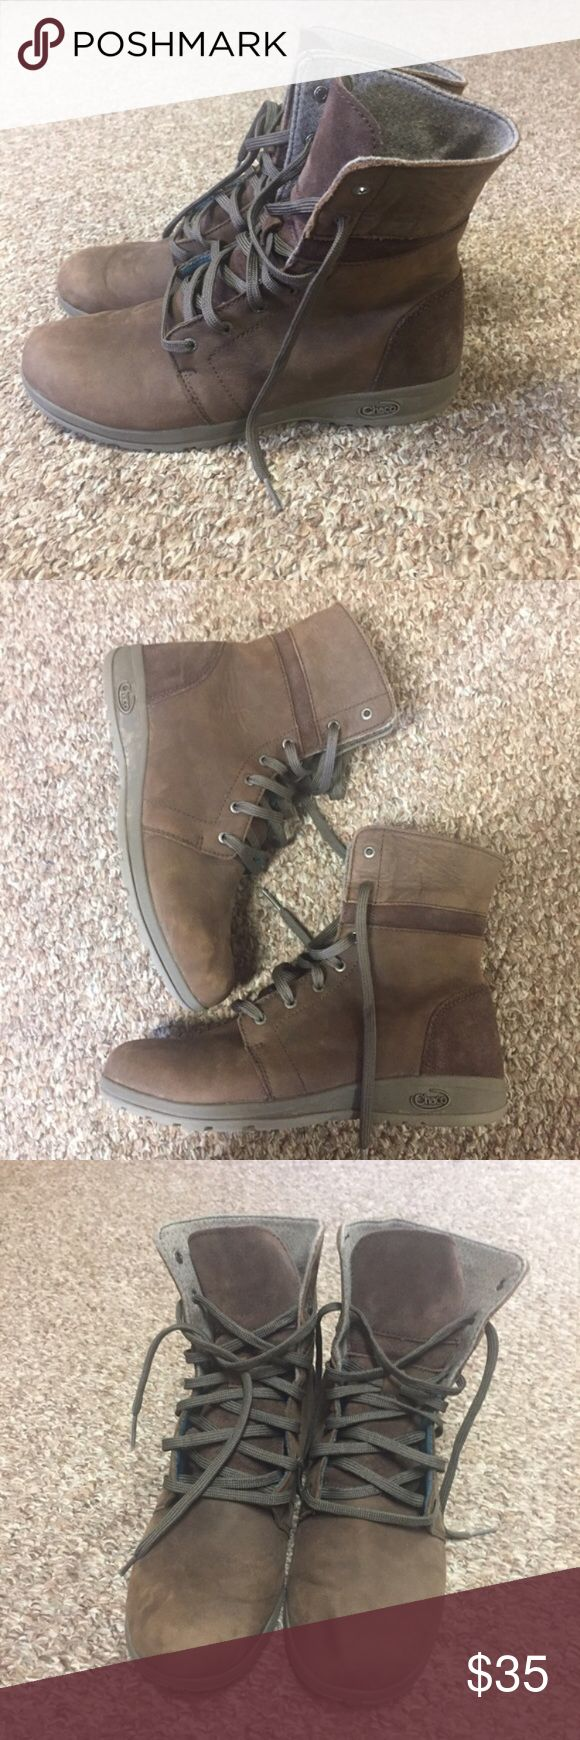 Chaco Natilly Boot- size 6.5 Selling these Chaco Natilly Boots in a size 6.5. They are slightly preowned but in overall very good shape! For size reference, I'm usually a 7 but these fit perfect. Feel free to leave any questions :) Chaco Shoes Combat & Moto Boots